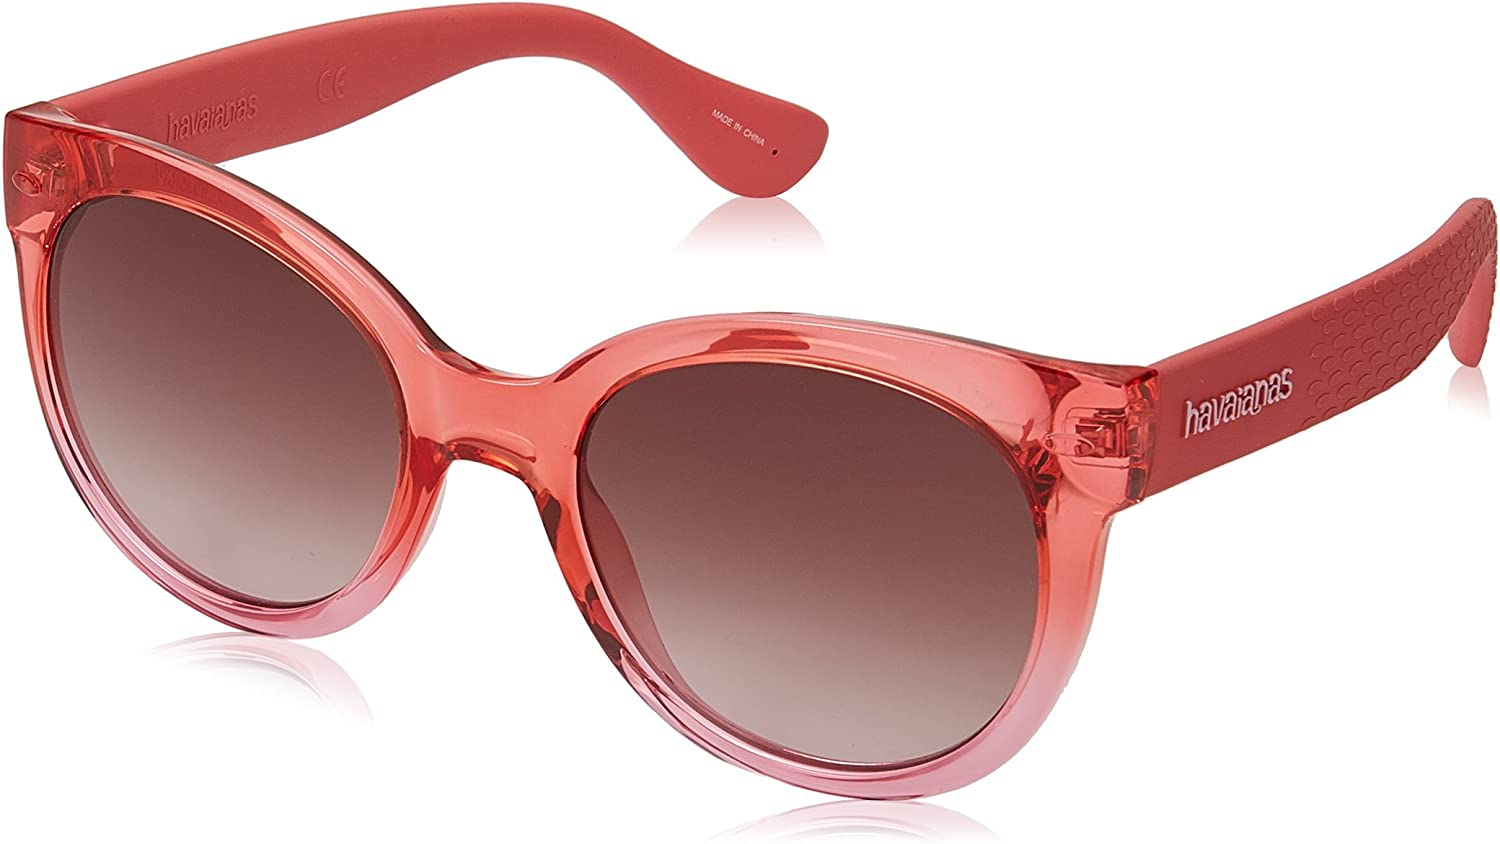 Havaianas Women's Ngoldnha m Round Sunglasses, Coral, 52 mm